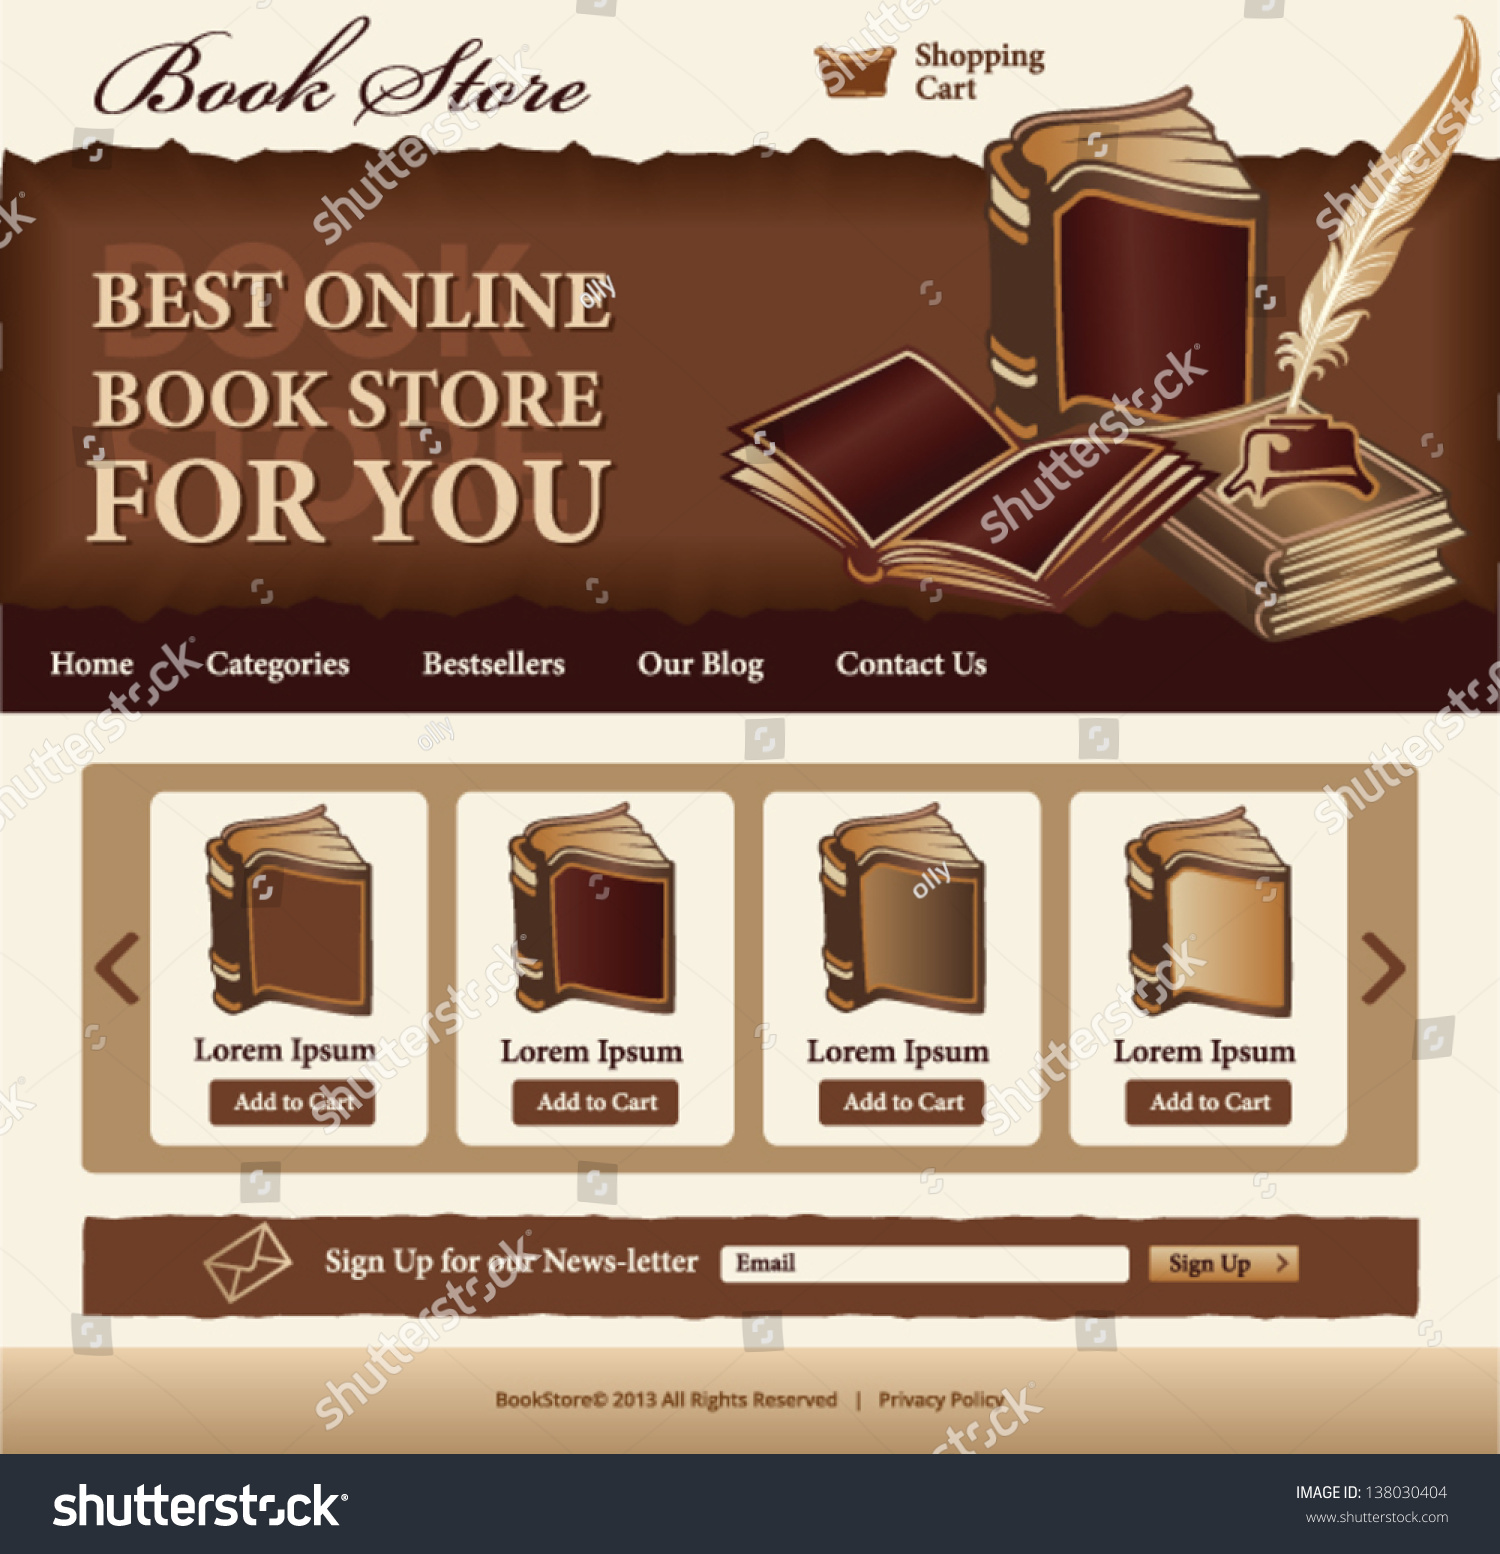 book store template website vintage style stock vector 138030404 shutterstock. Black Bedroom Furniture Sets. Home Design Ideas